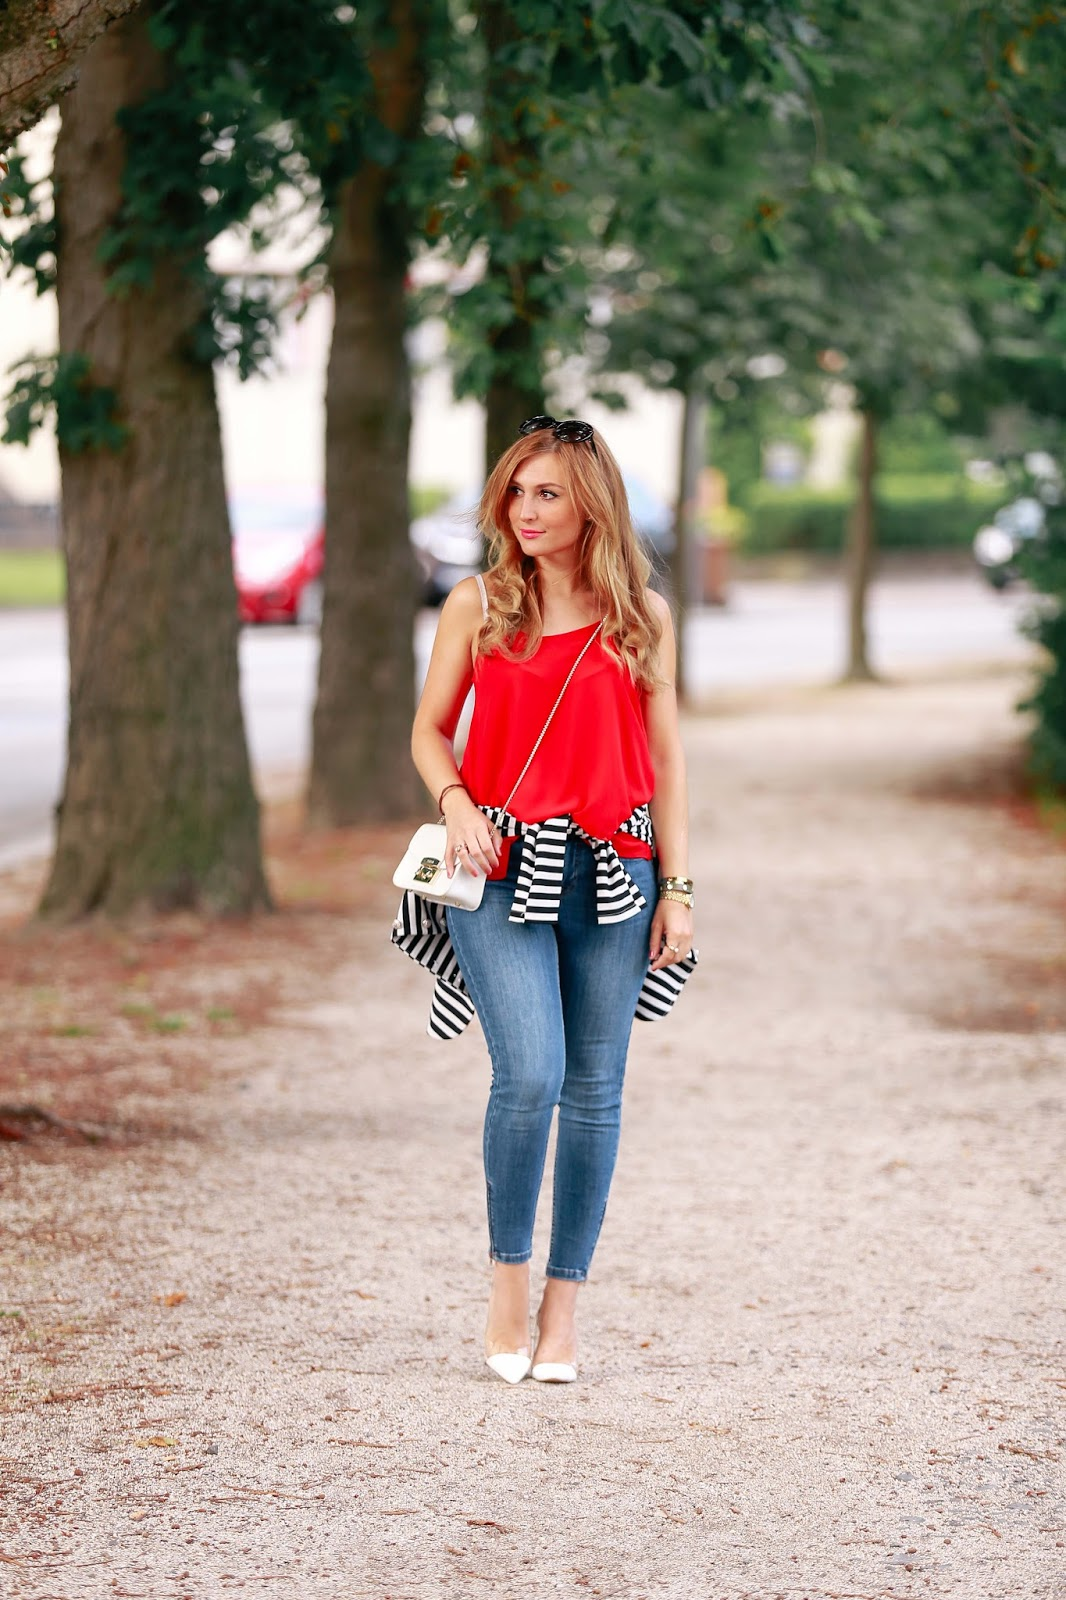 fashionstylebyjohanna-rotes-top-Blogger-Fashionblog-Outfit-Modeblog-München-deutsche-Fashionblogger-rotes-Oberteil